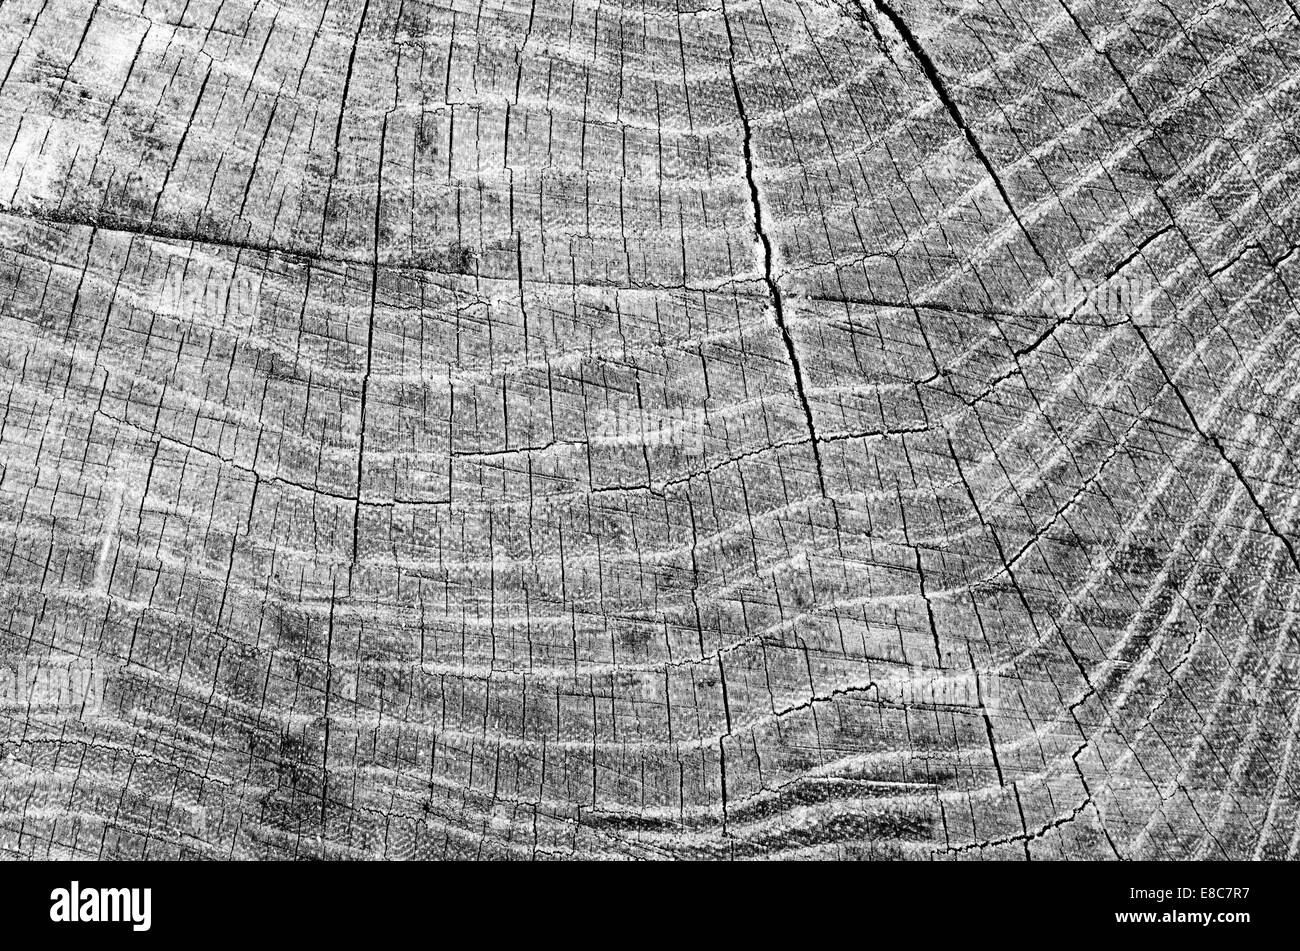 La texture en bois fond d'arbre Photo Stock